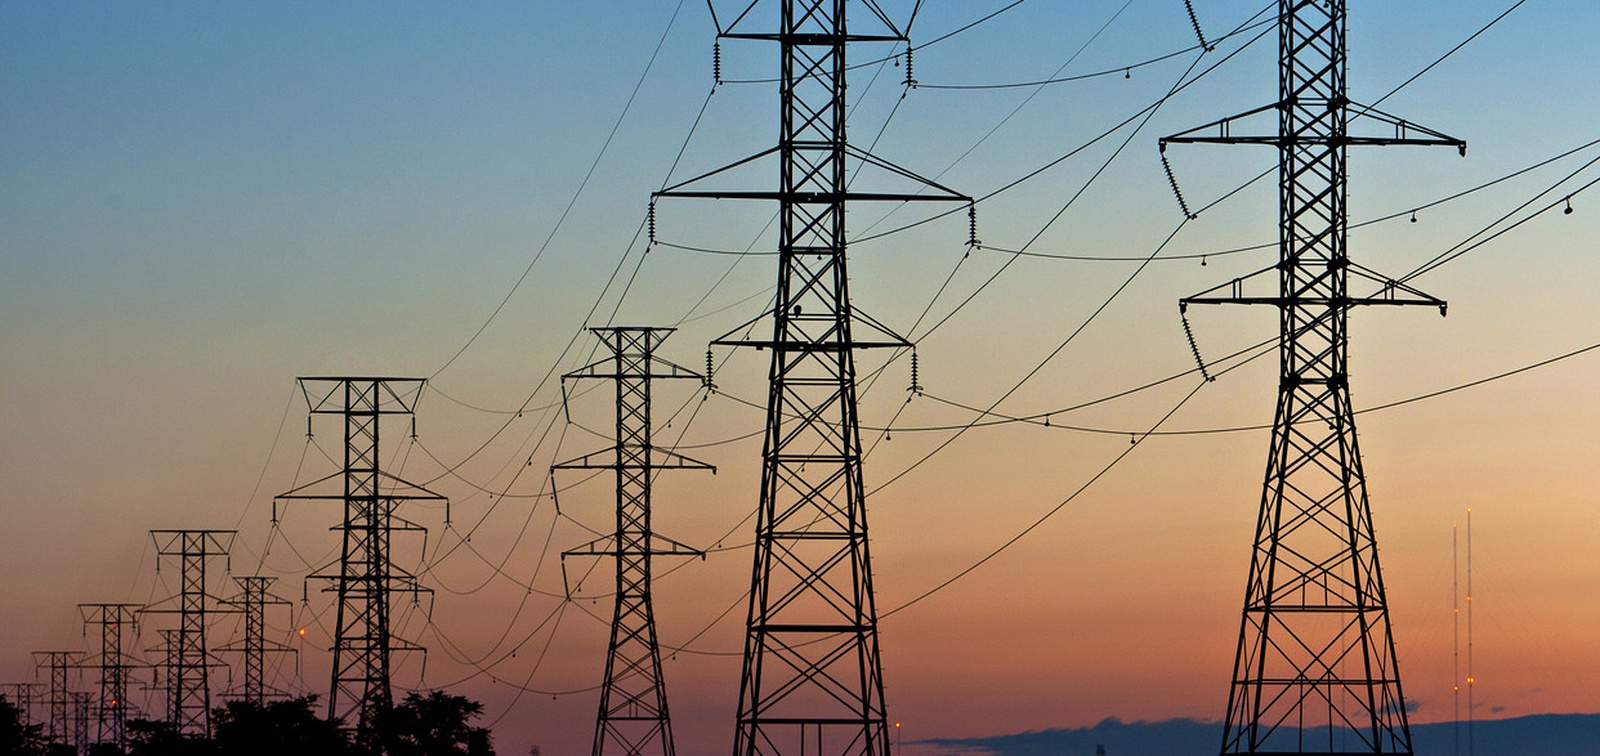 Electricity markets don't need an overhaul